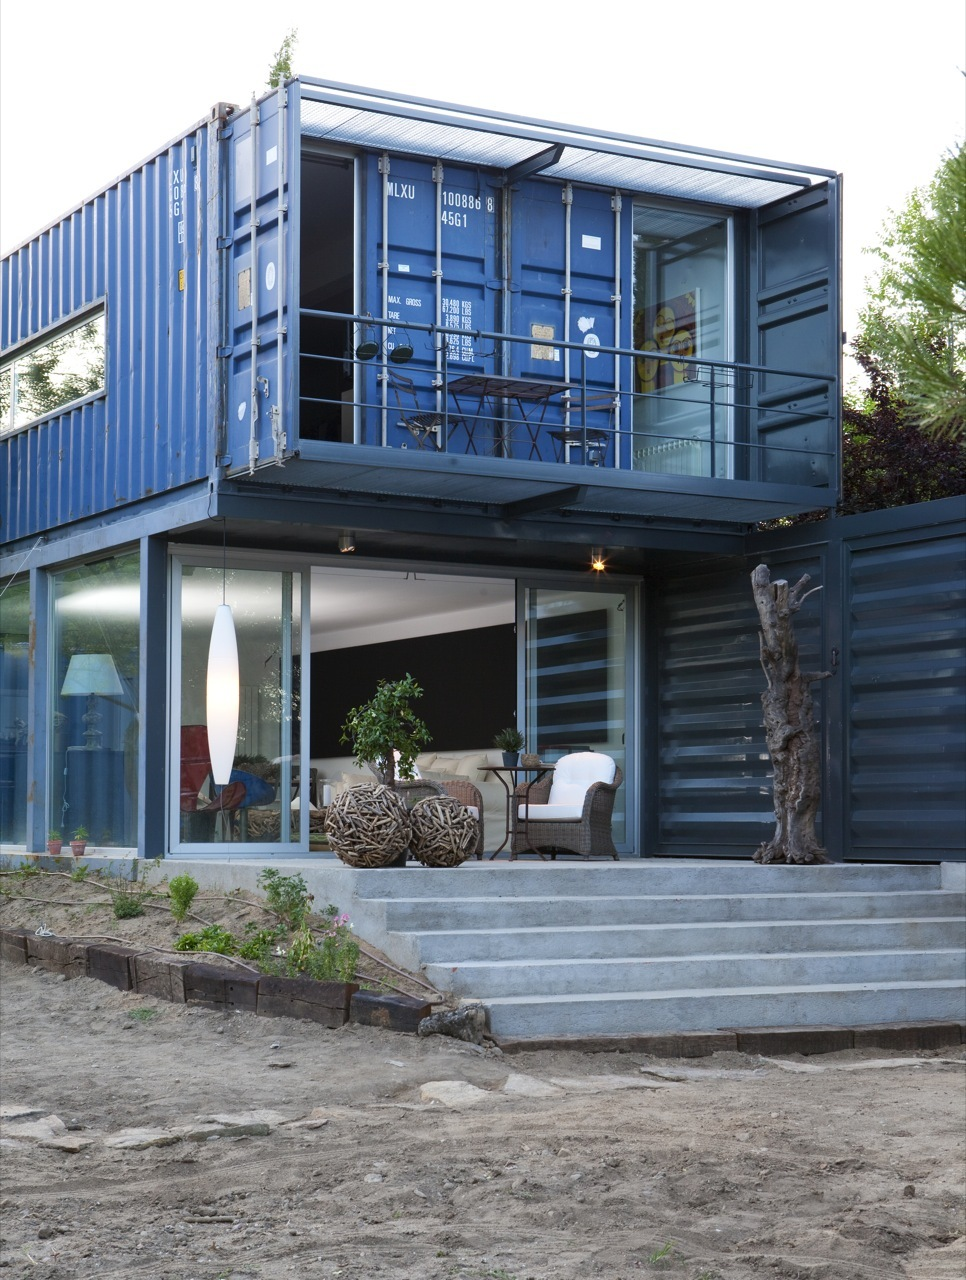 Shipping container homes two story container house in el tiemblo spain - Container home architect ...